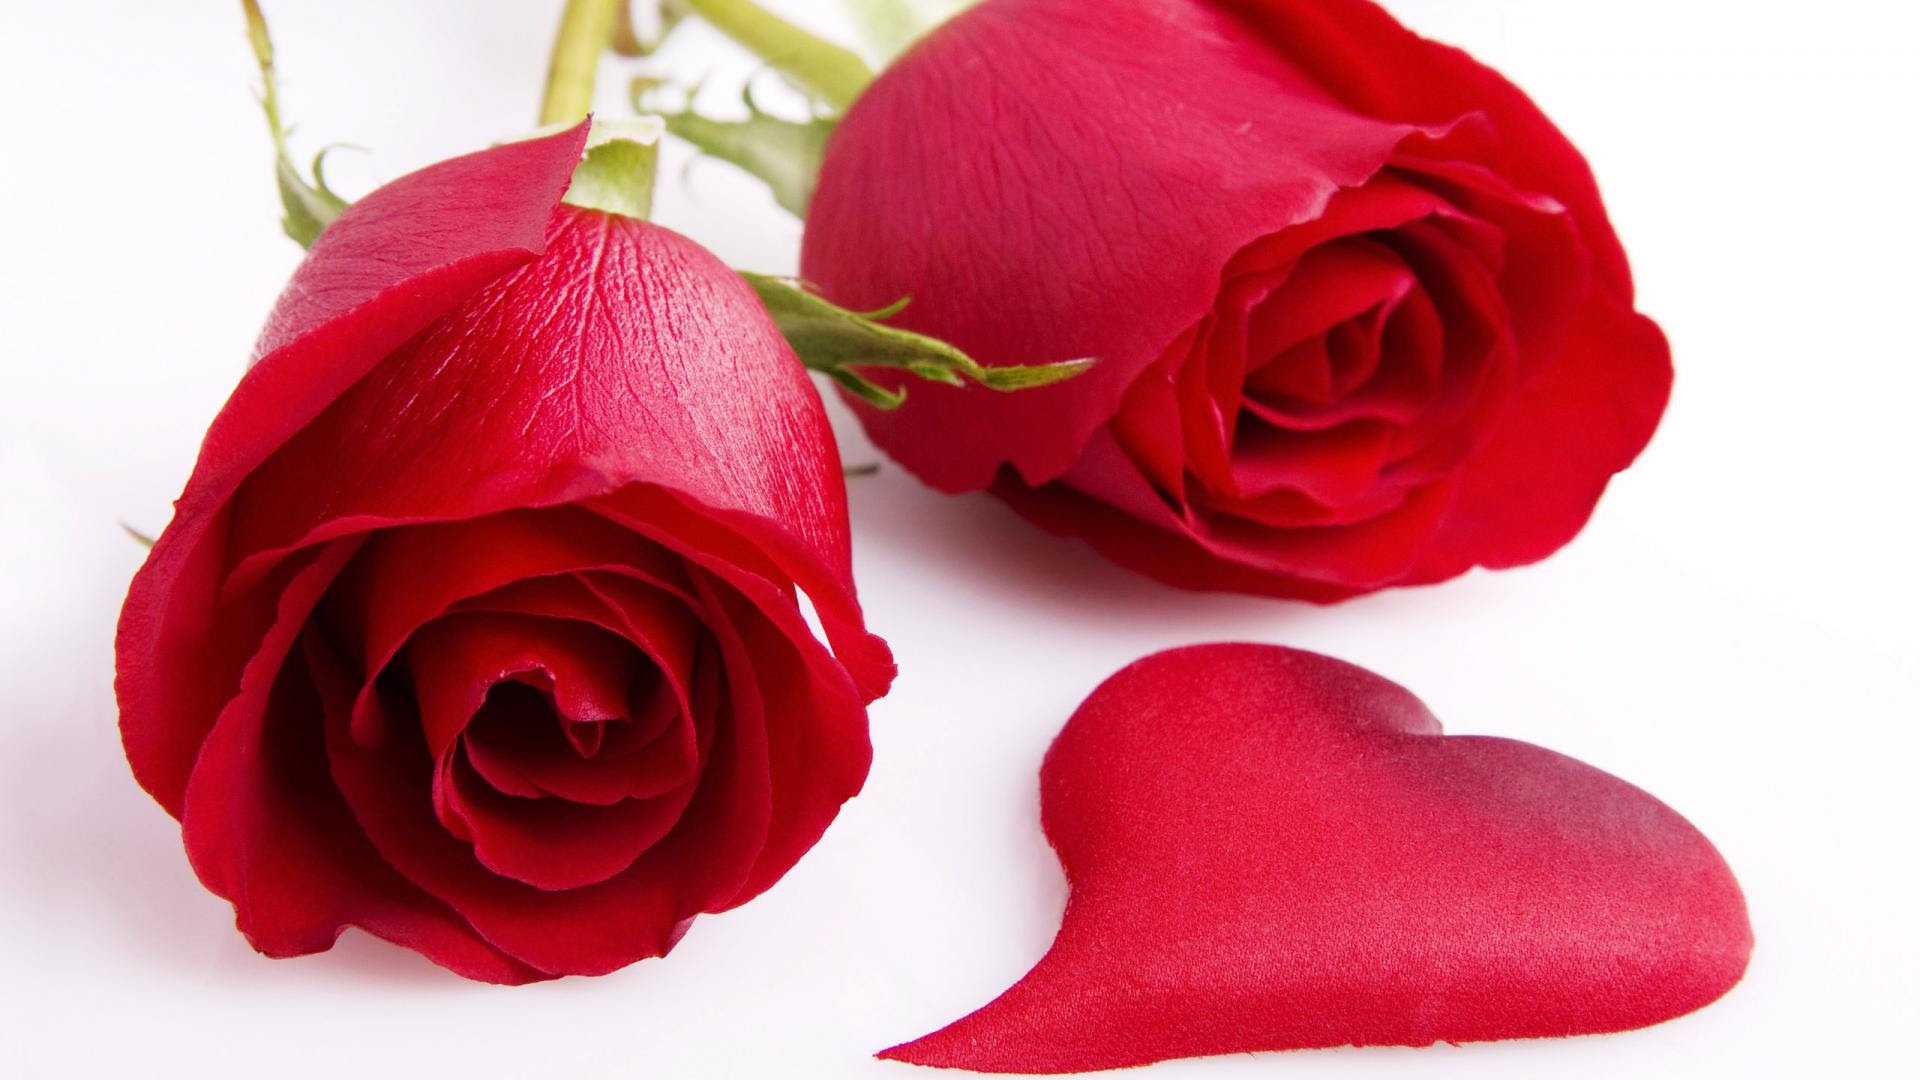 Red Rose Wallpapers Free Download Sf Wallpaper